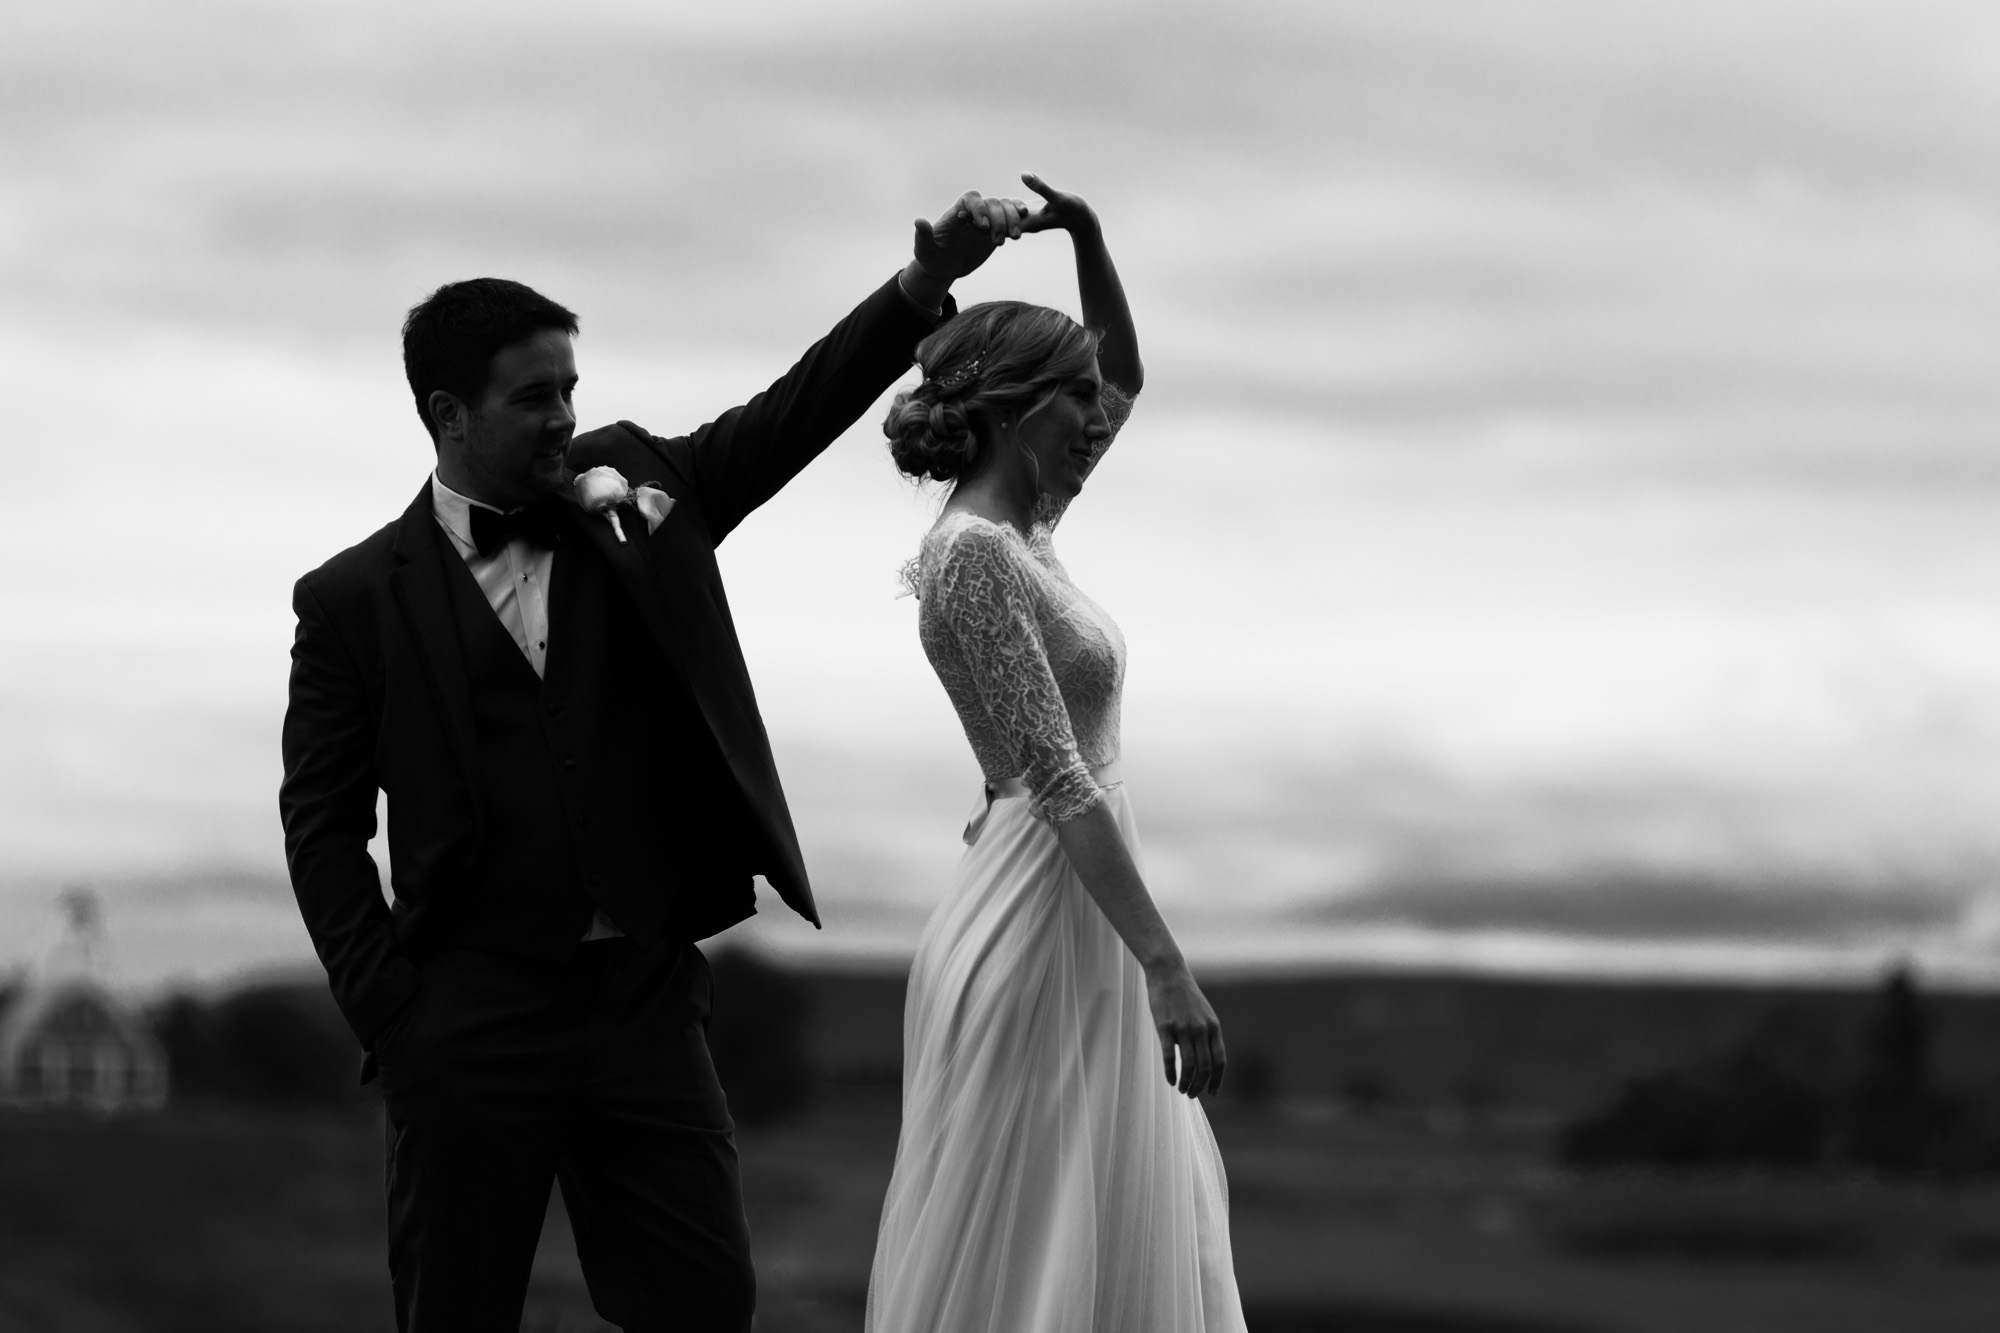 black and white image of a bride and groom dancing on a hill. Groom is spinning the bride